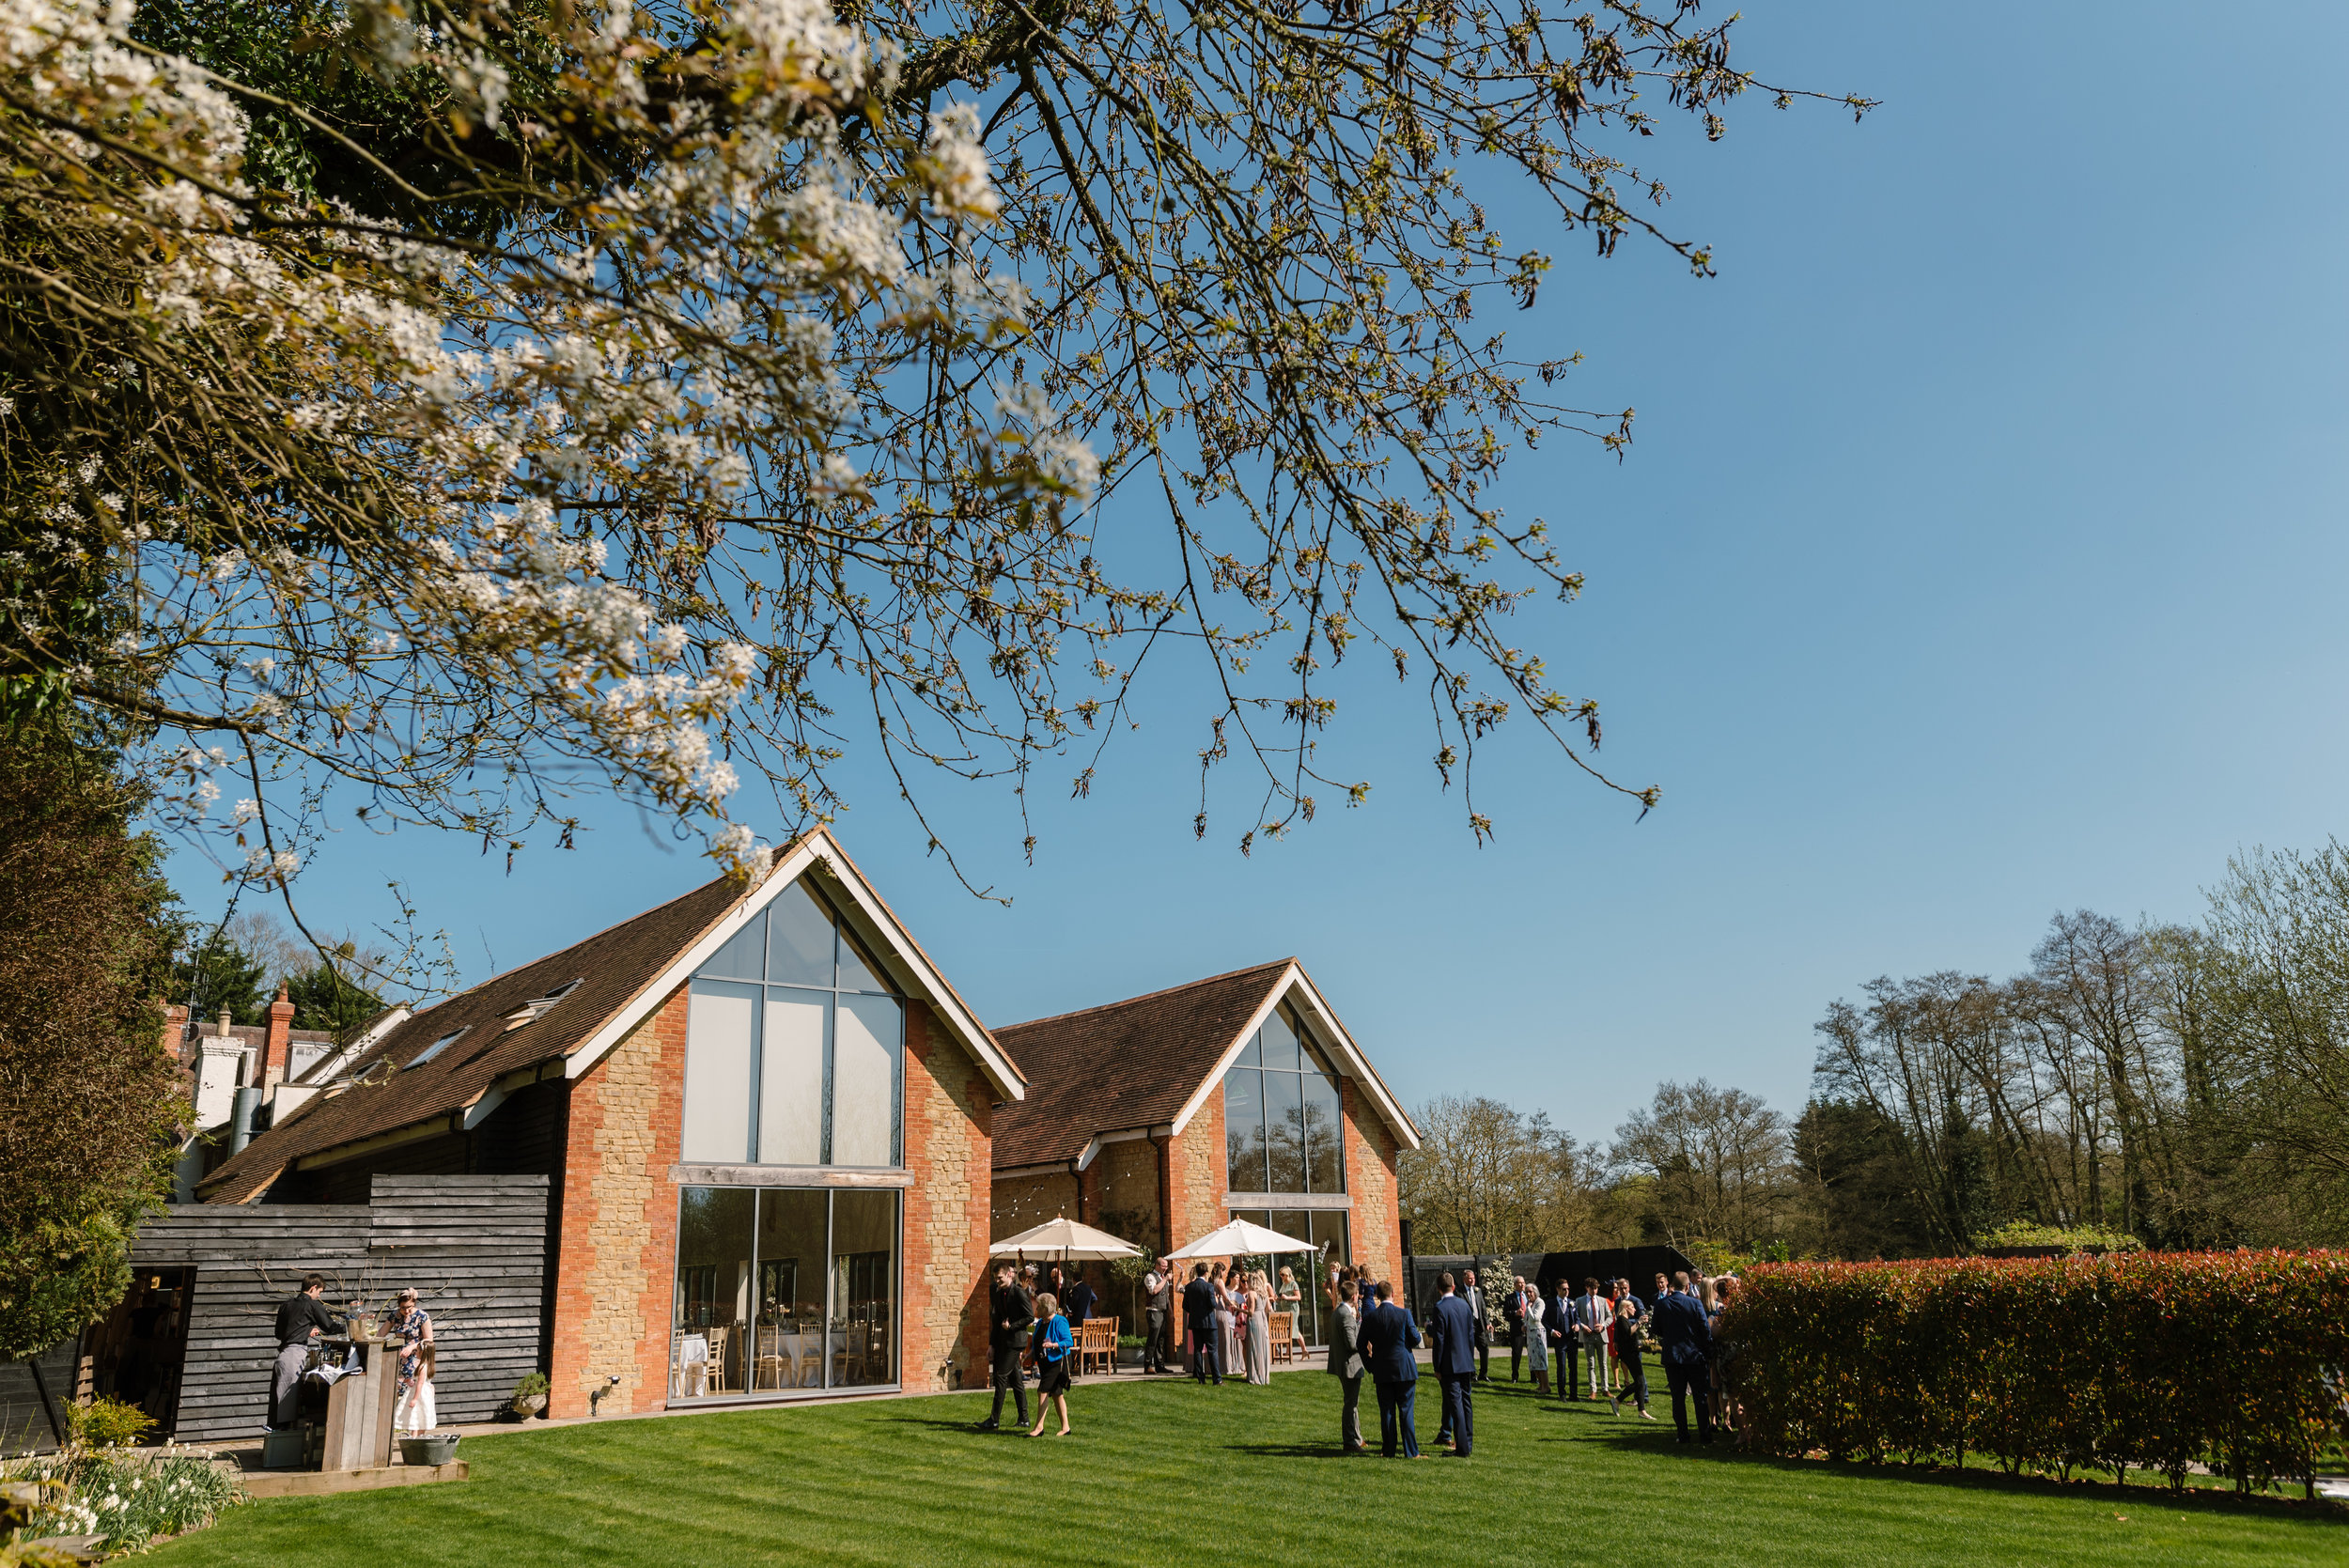 Sarah-Fishlock-Photography : Hampshire-wedding-photographer-hampshire : fleet-wedding-photographer-fleet : Millbridge-Court-Wedding-Photographer : Millbridge-Court-Wedding-Venue : Surrey-wedding-venue-743.jpg